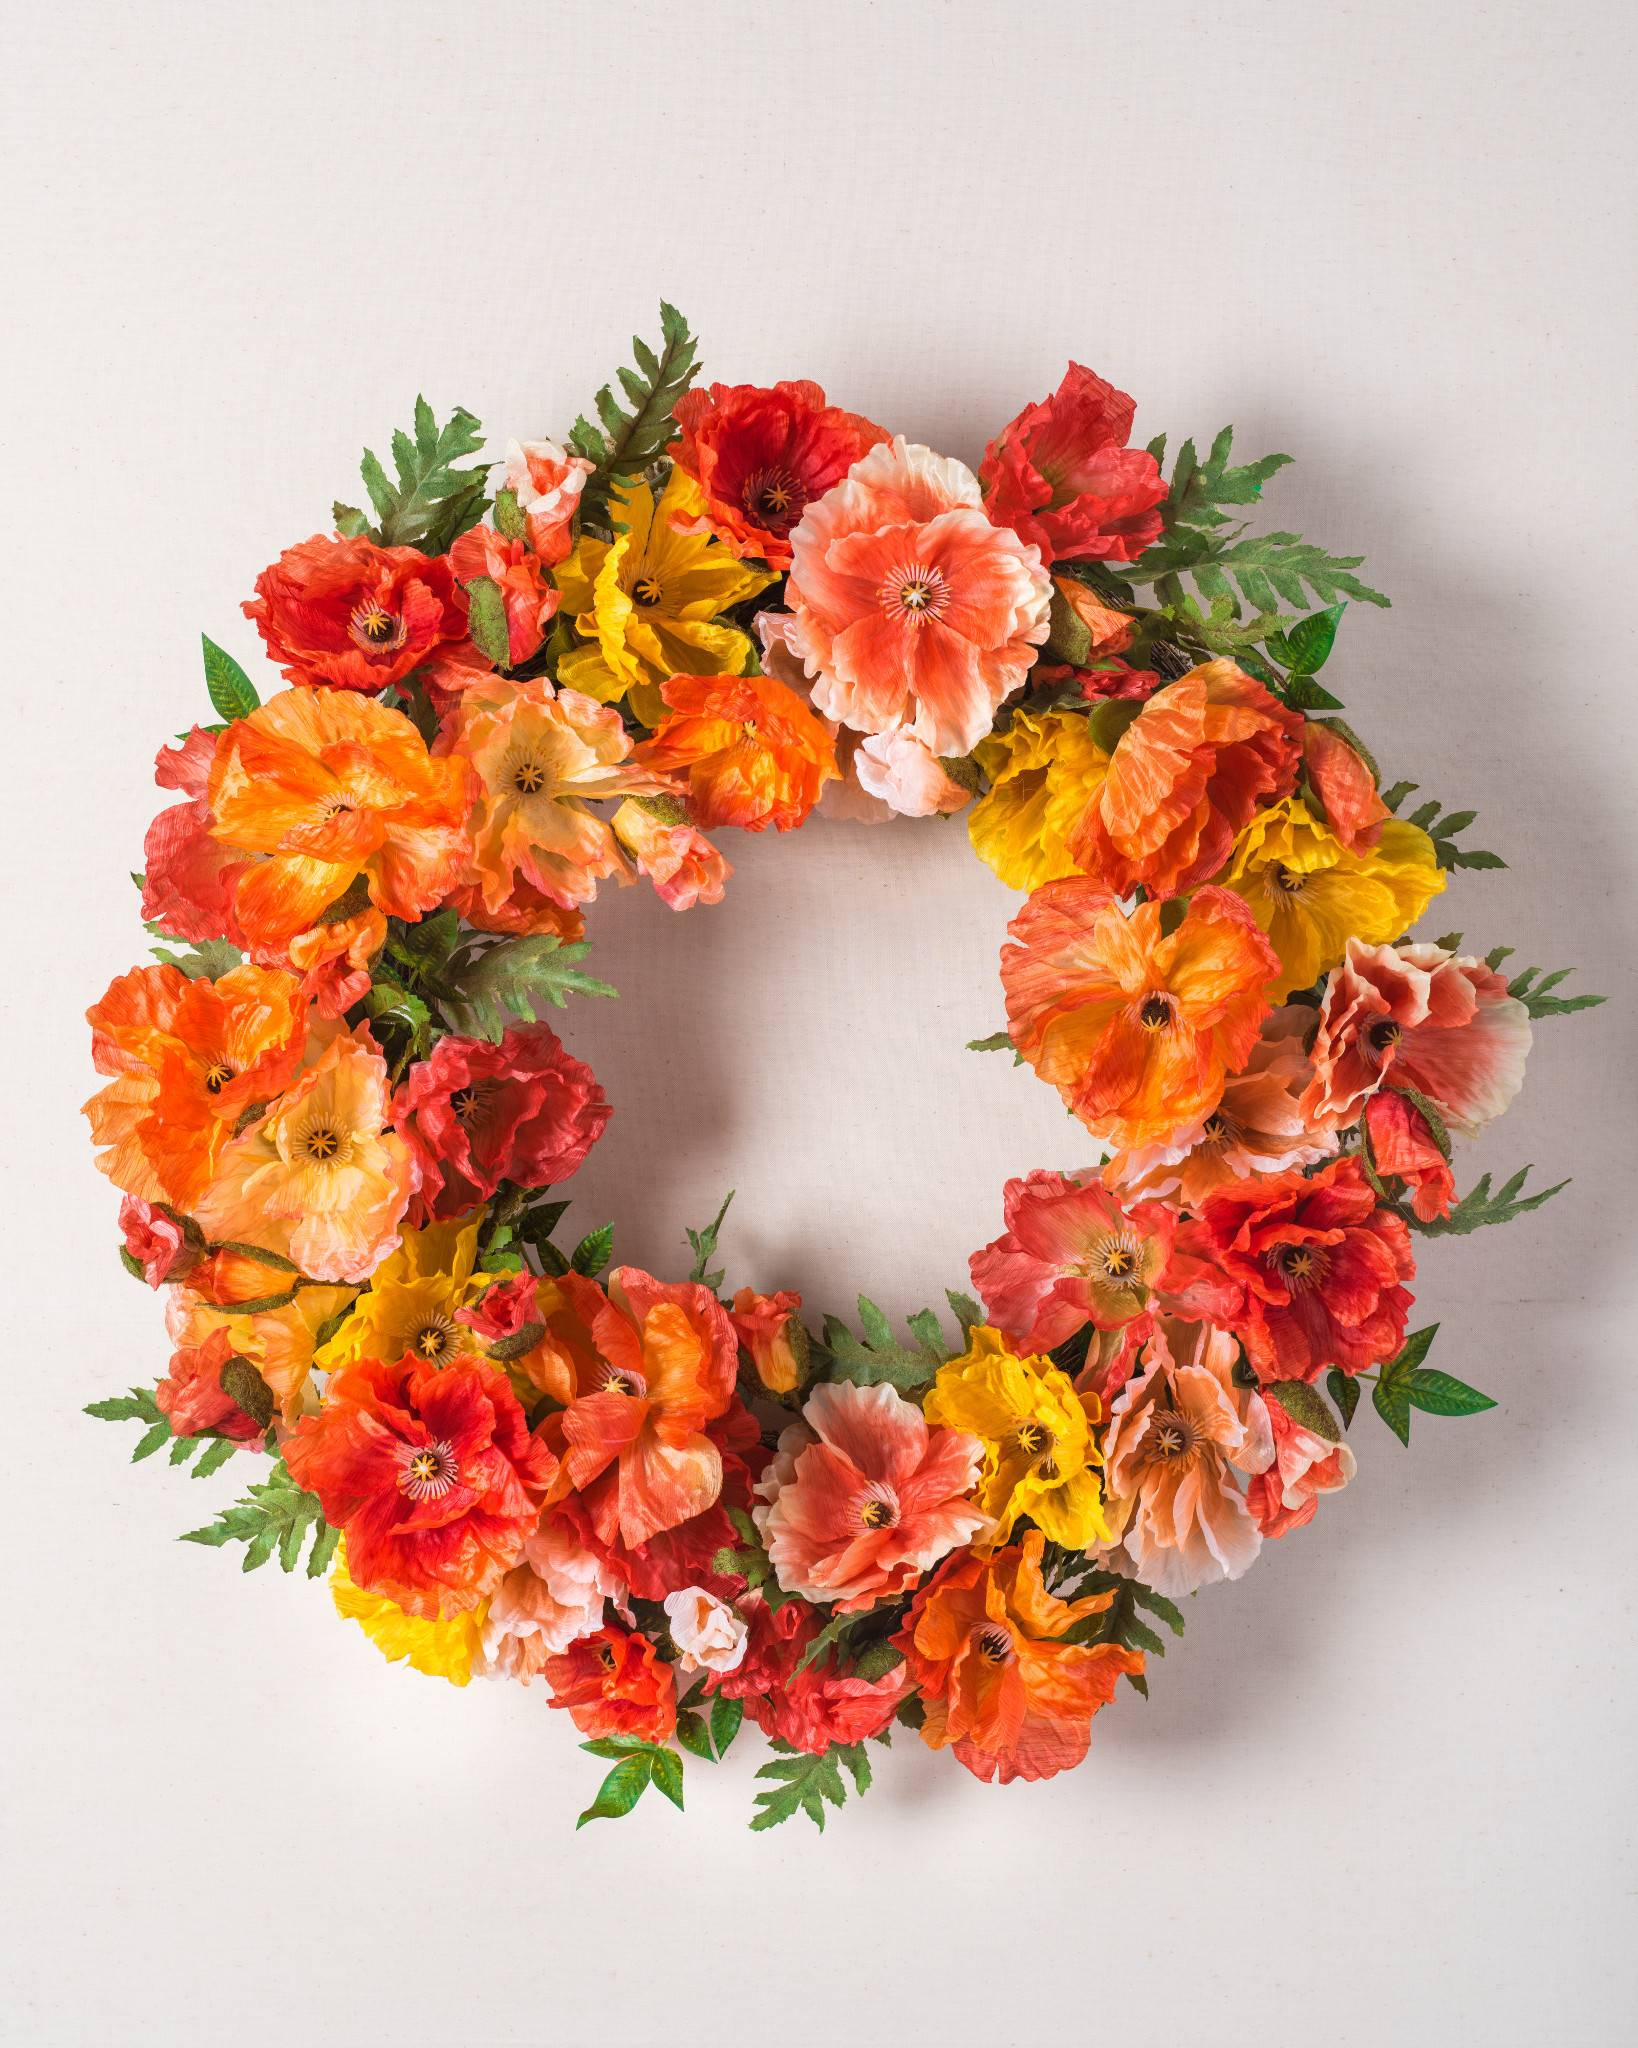 Spring poppy flower wreath garland swag balsam hill spring poppy wreath spring poppy wreath mightylinksfo